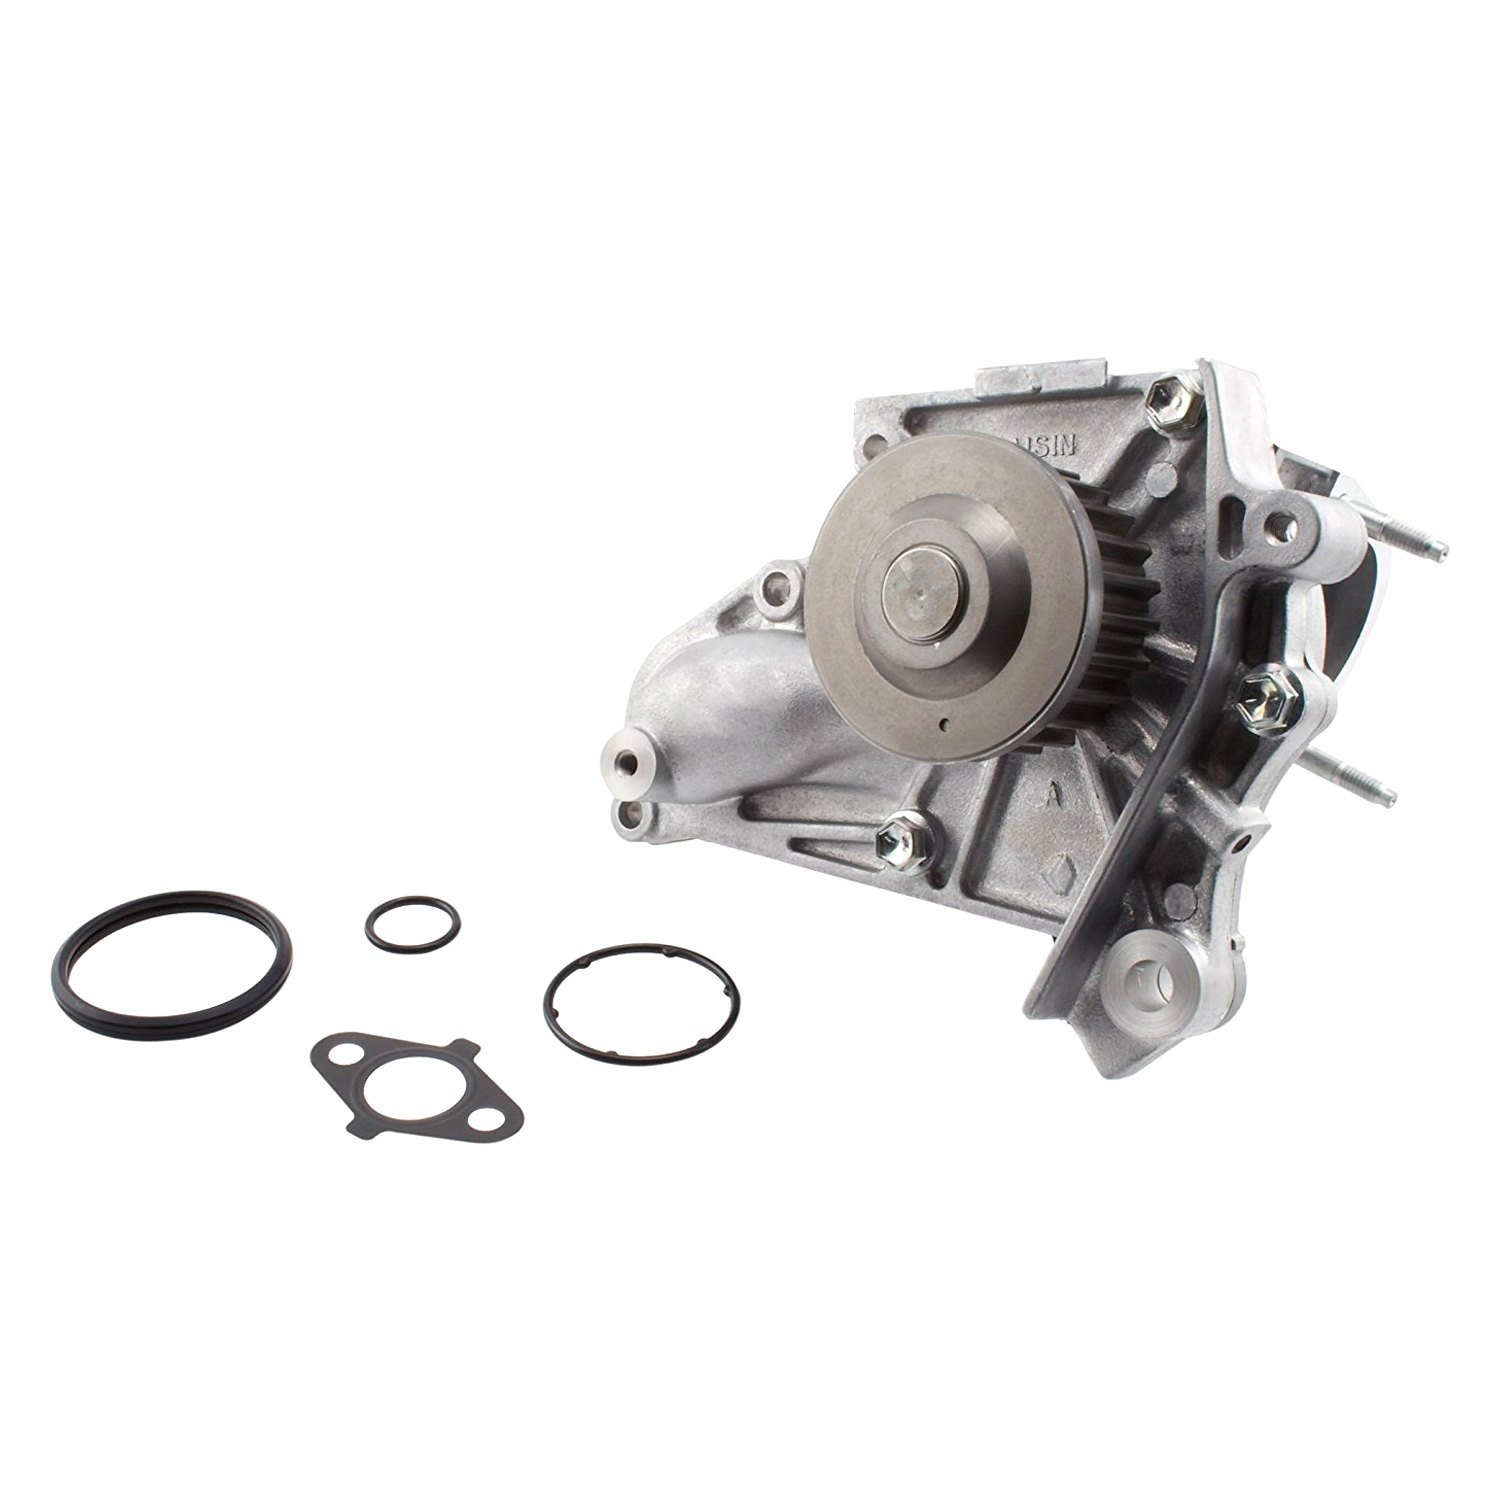 aisin toyota camry 2000 2001 water pump. Black Bedroom Furniture Sets. Home Design Ideas